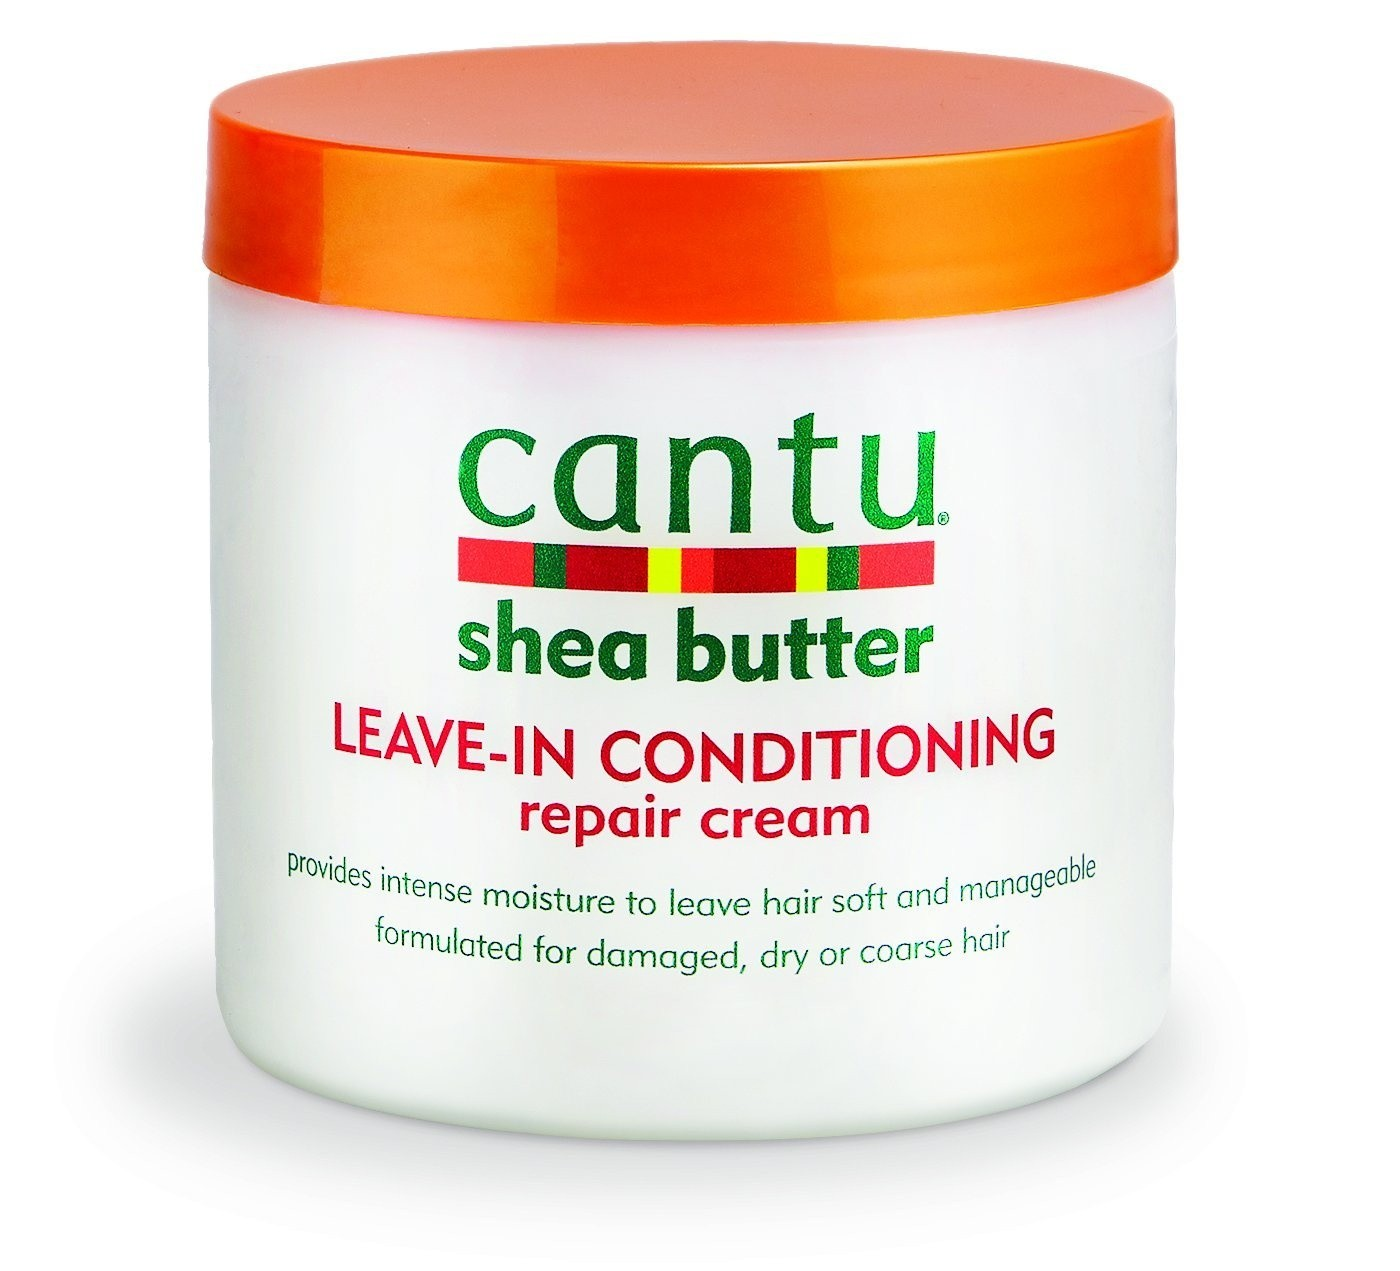 CANTU Shea Butter Leave In Conditioning 2 stuks